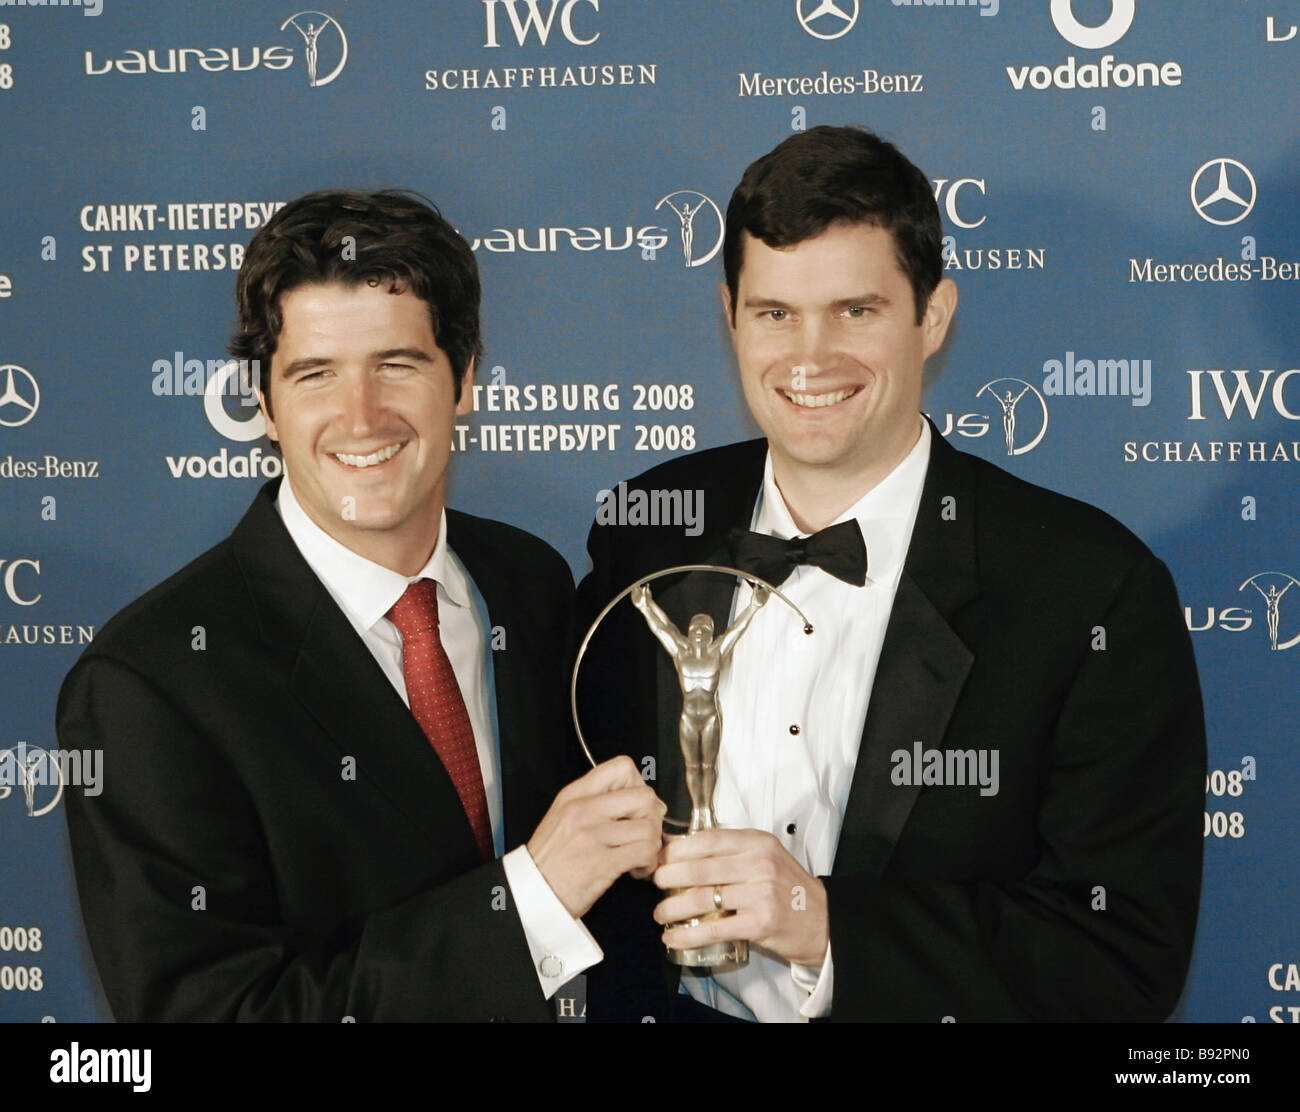 The Tuohey brothers Brendan and Sean of the United States who won the Laureus Sport for Good award at the 9th annual - Stock Image